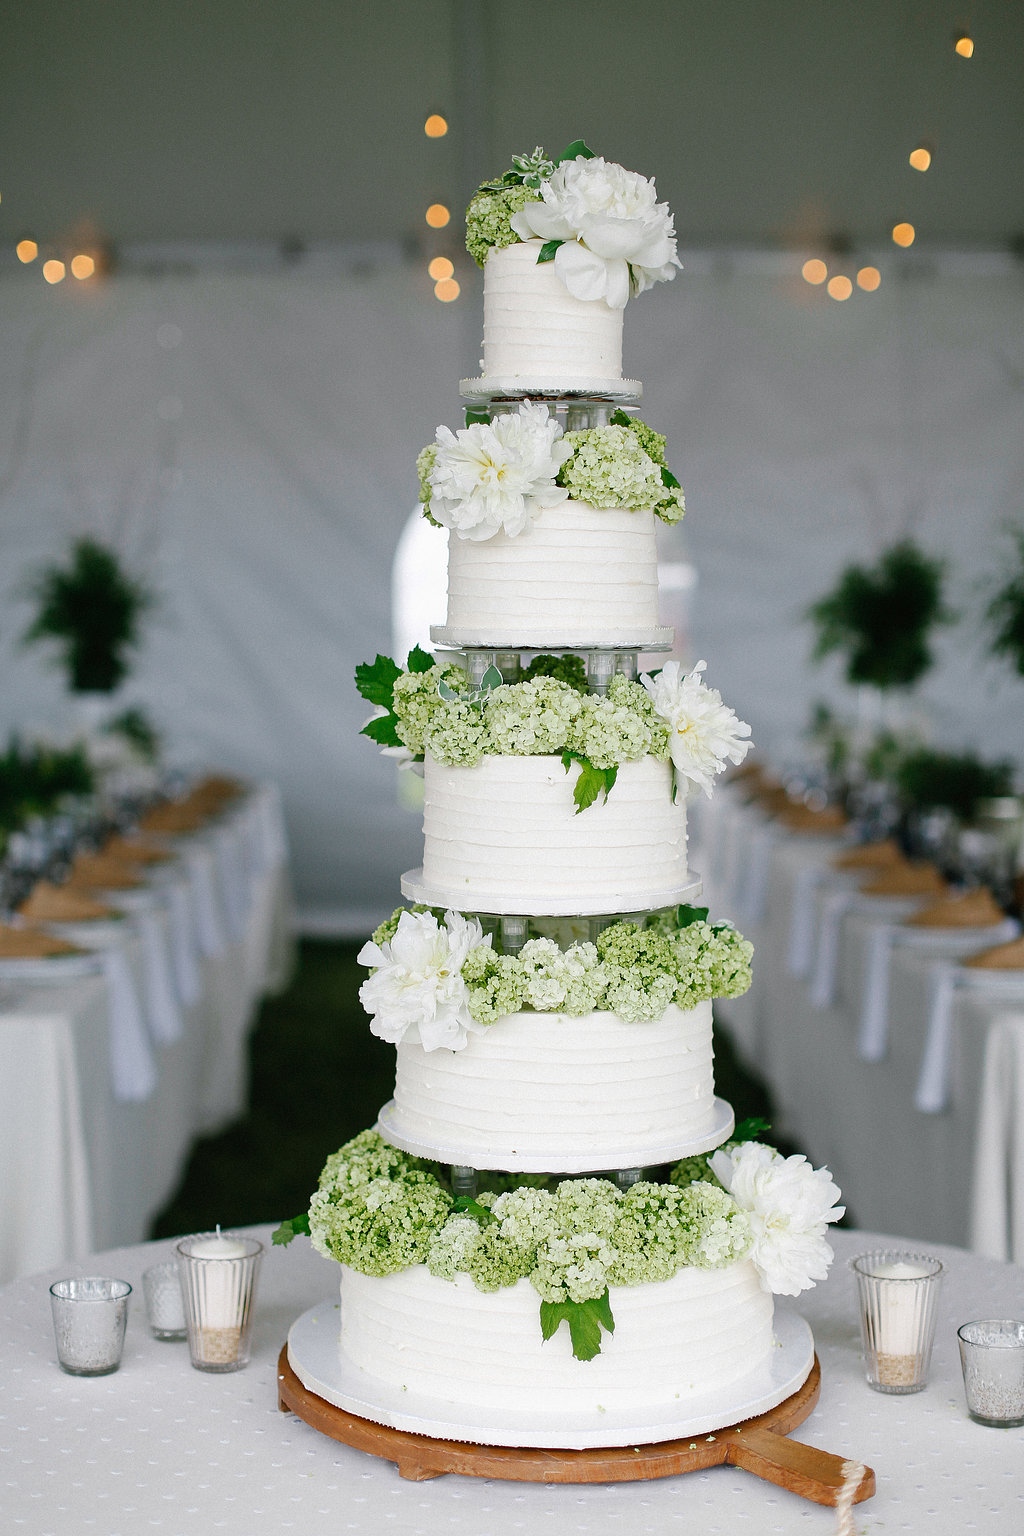 wedding cake with fresh flowers green hydrangeas white peonies